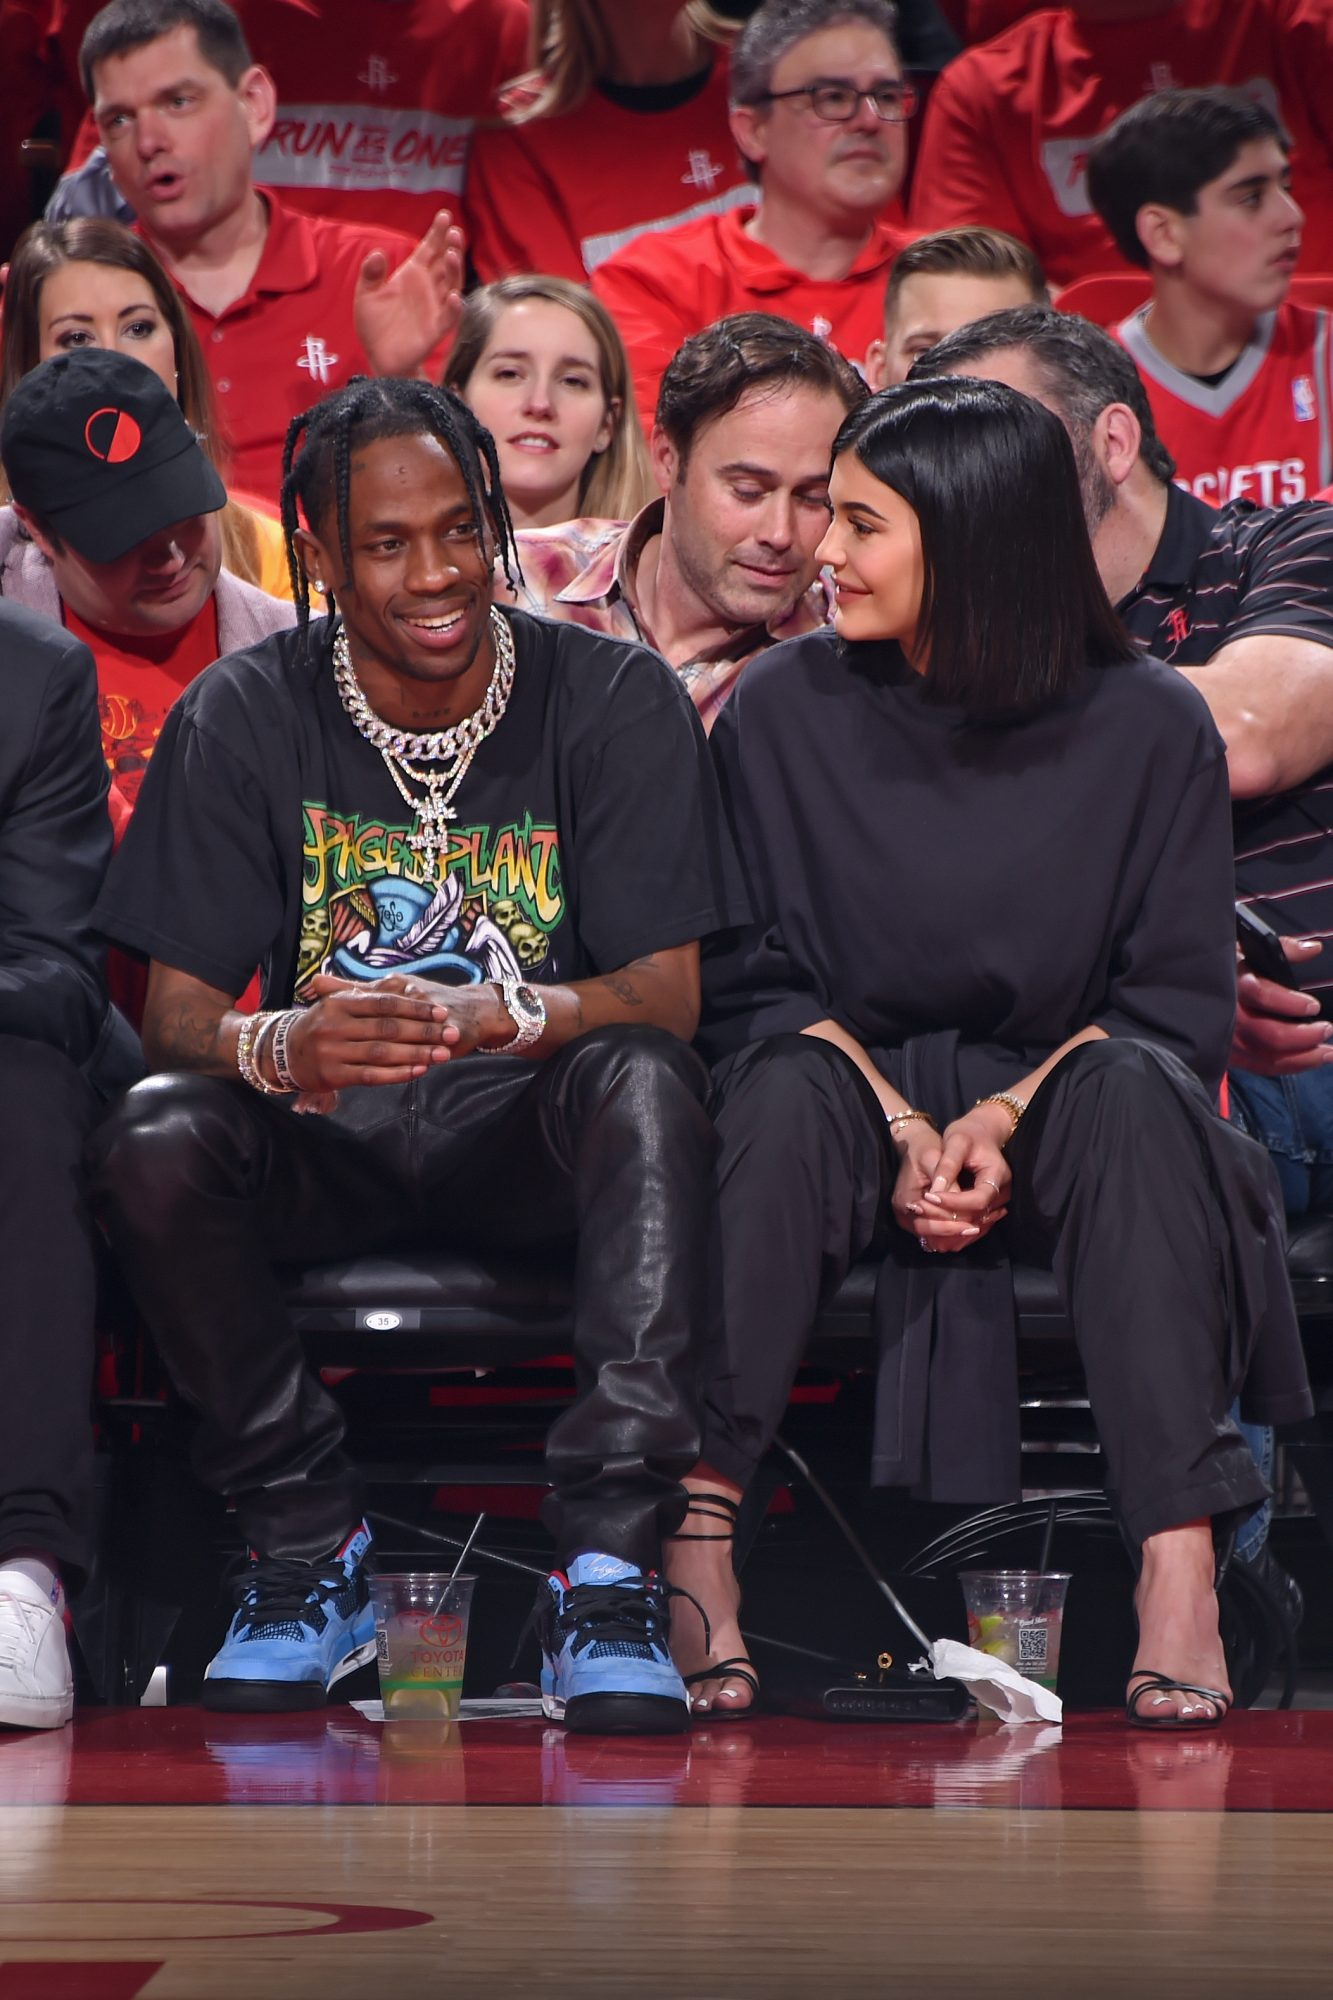 Kylie Jenner and Travis Scott at Minnesota Timberwolves v Houston Rockets Game Two